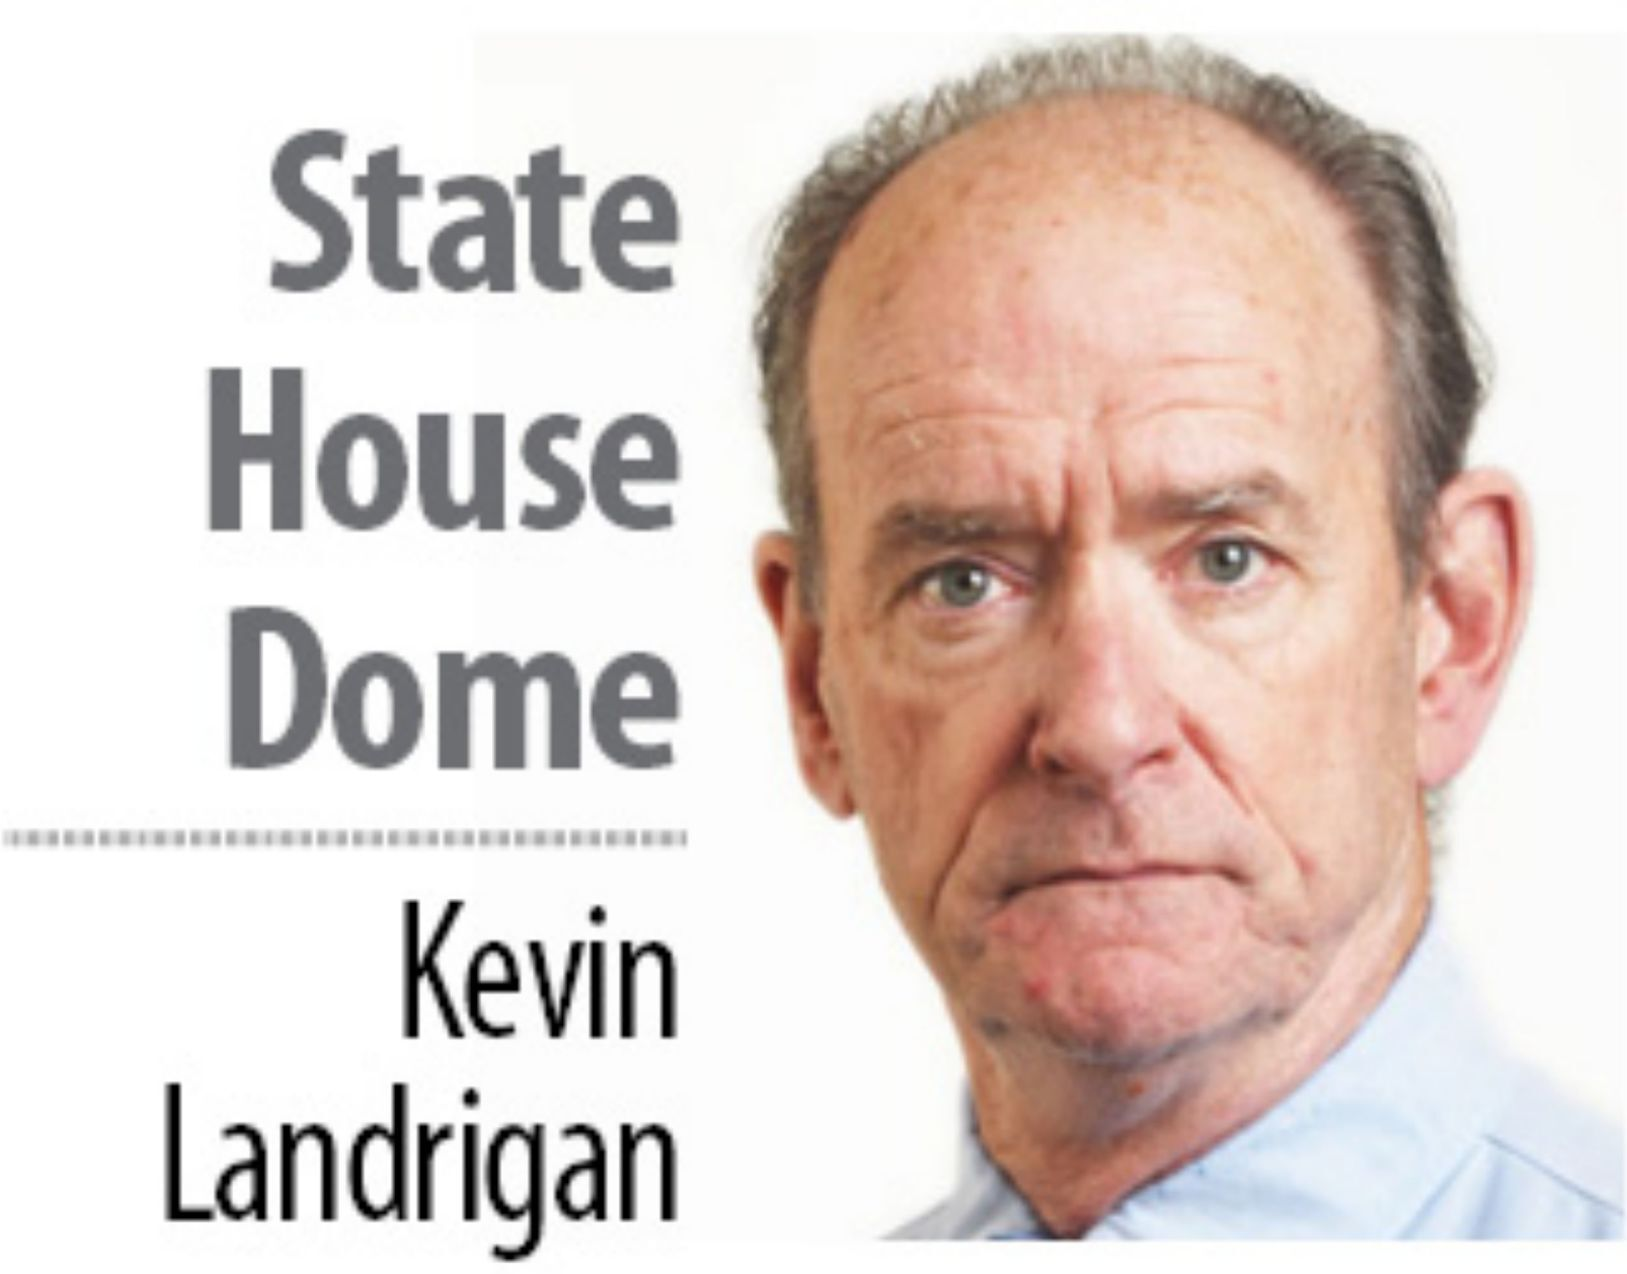 State House Dome: 'Flipped' House leads to policy reversals